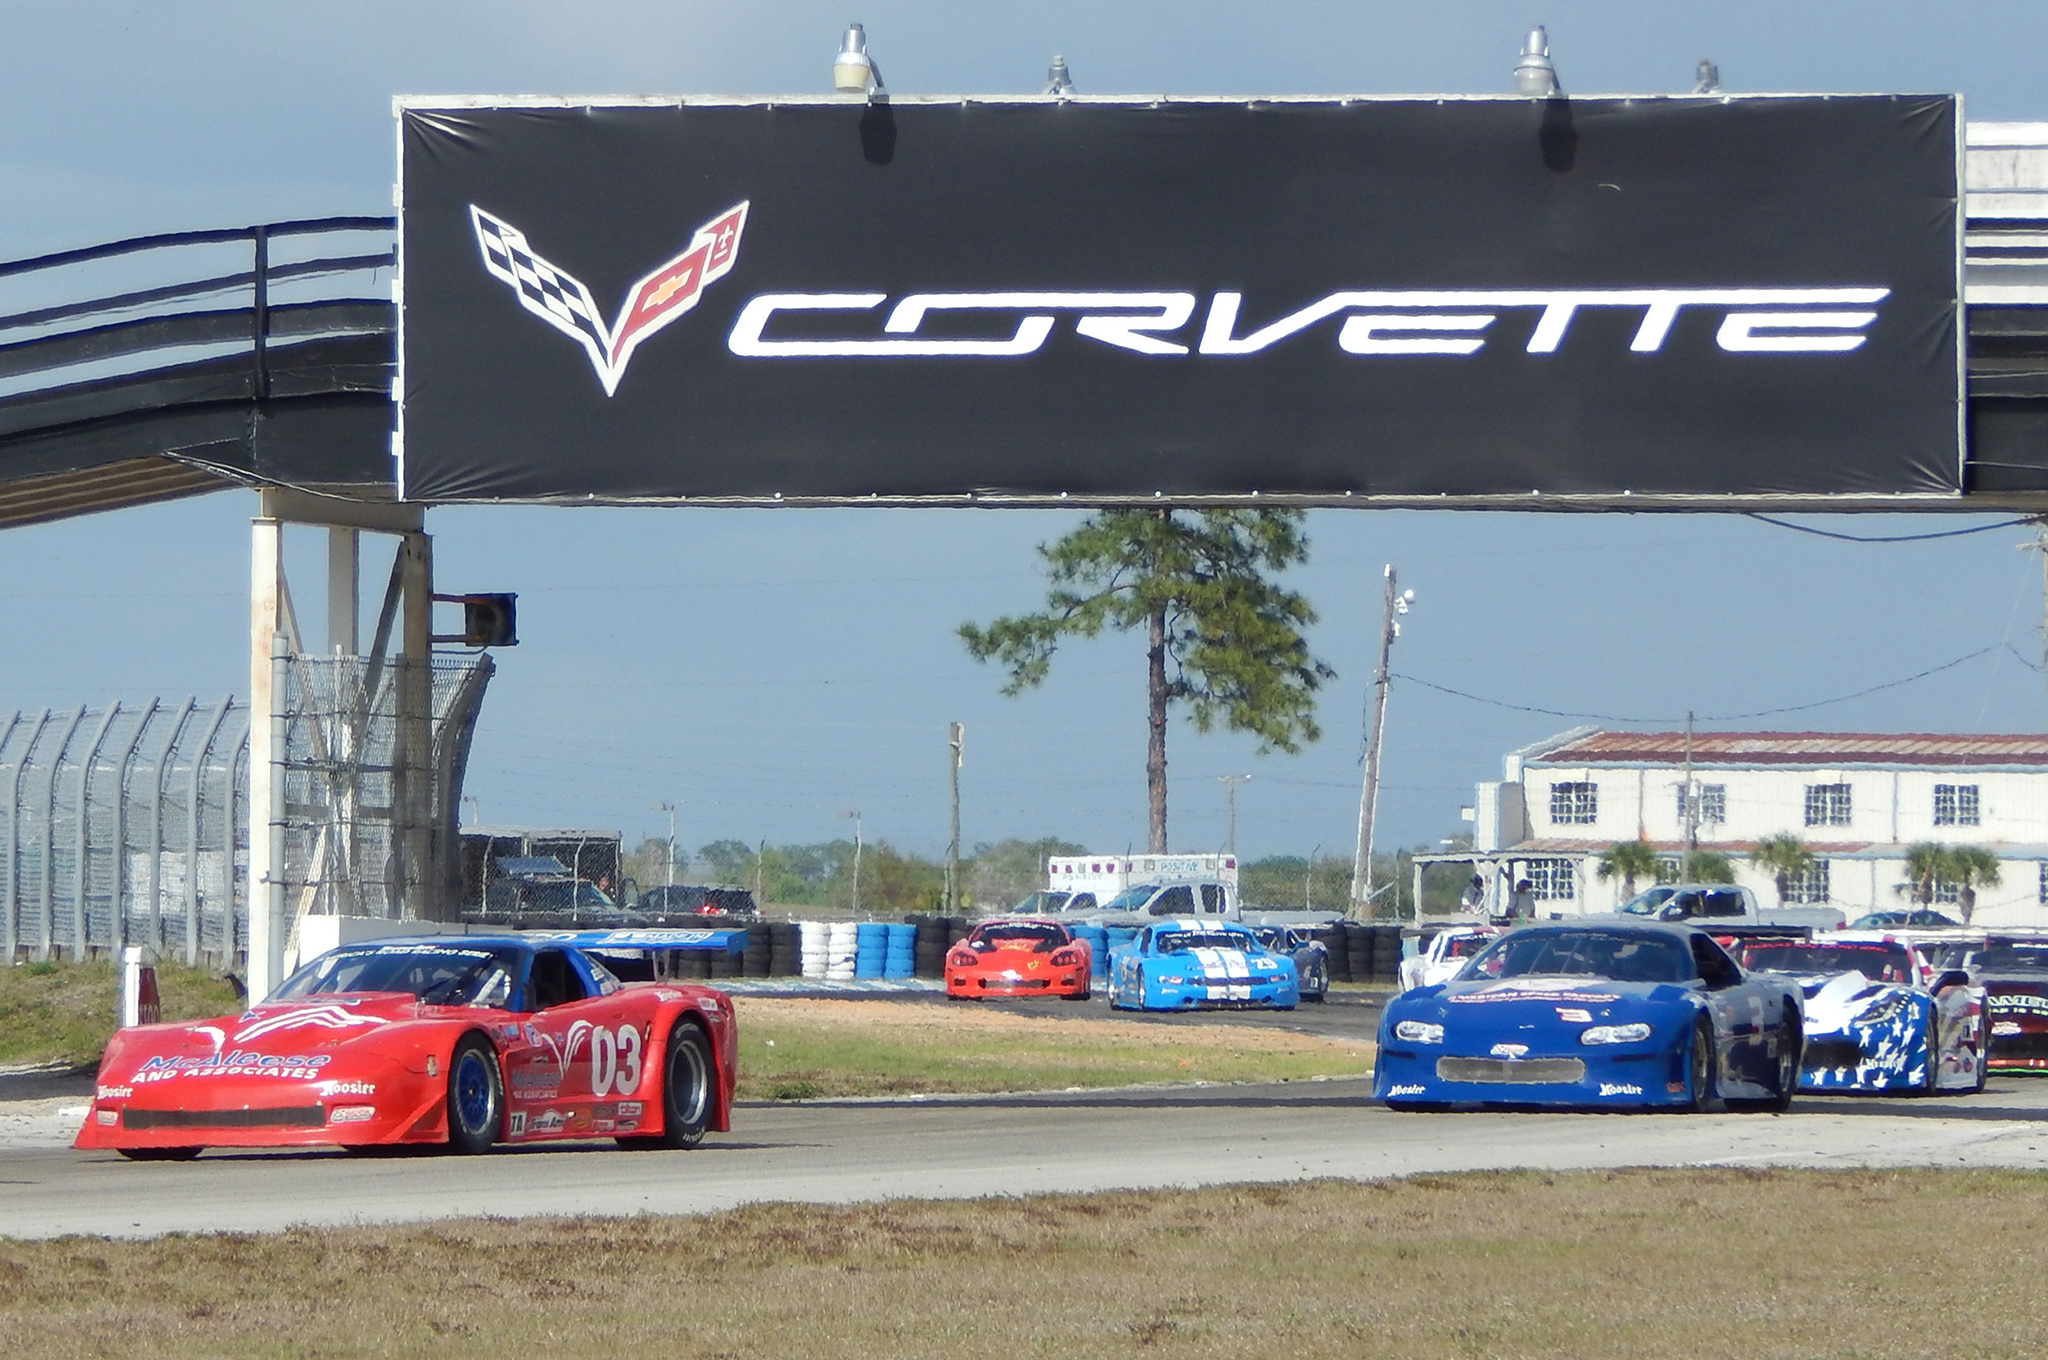 This was one of most hotly contested Trans-Am races ever with a record-setting field of 69 cars.